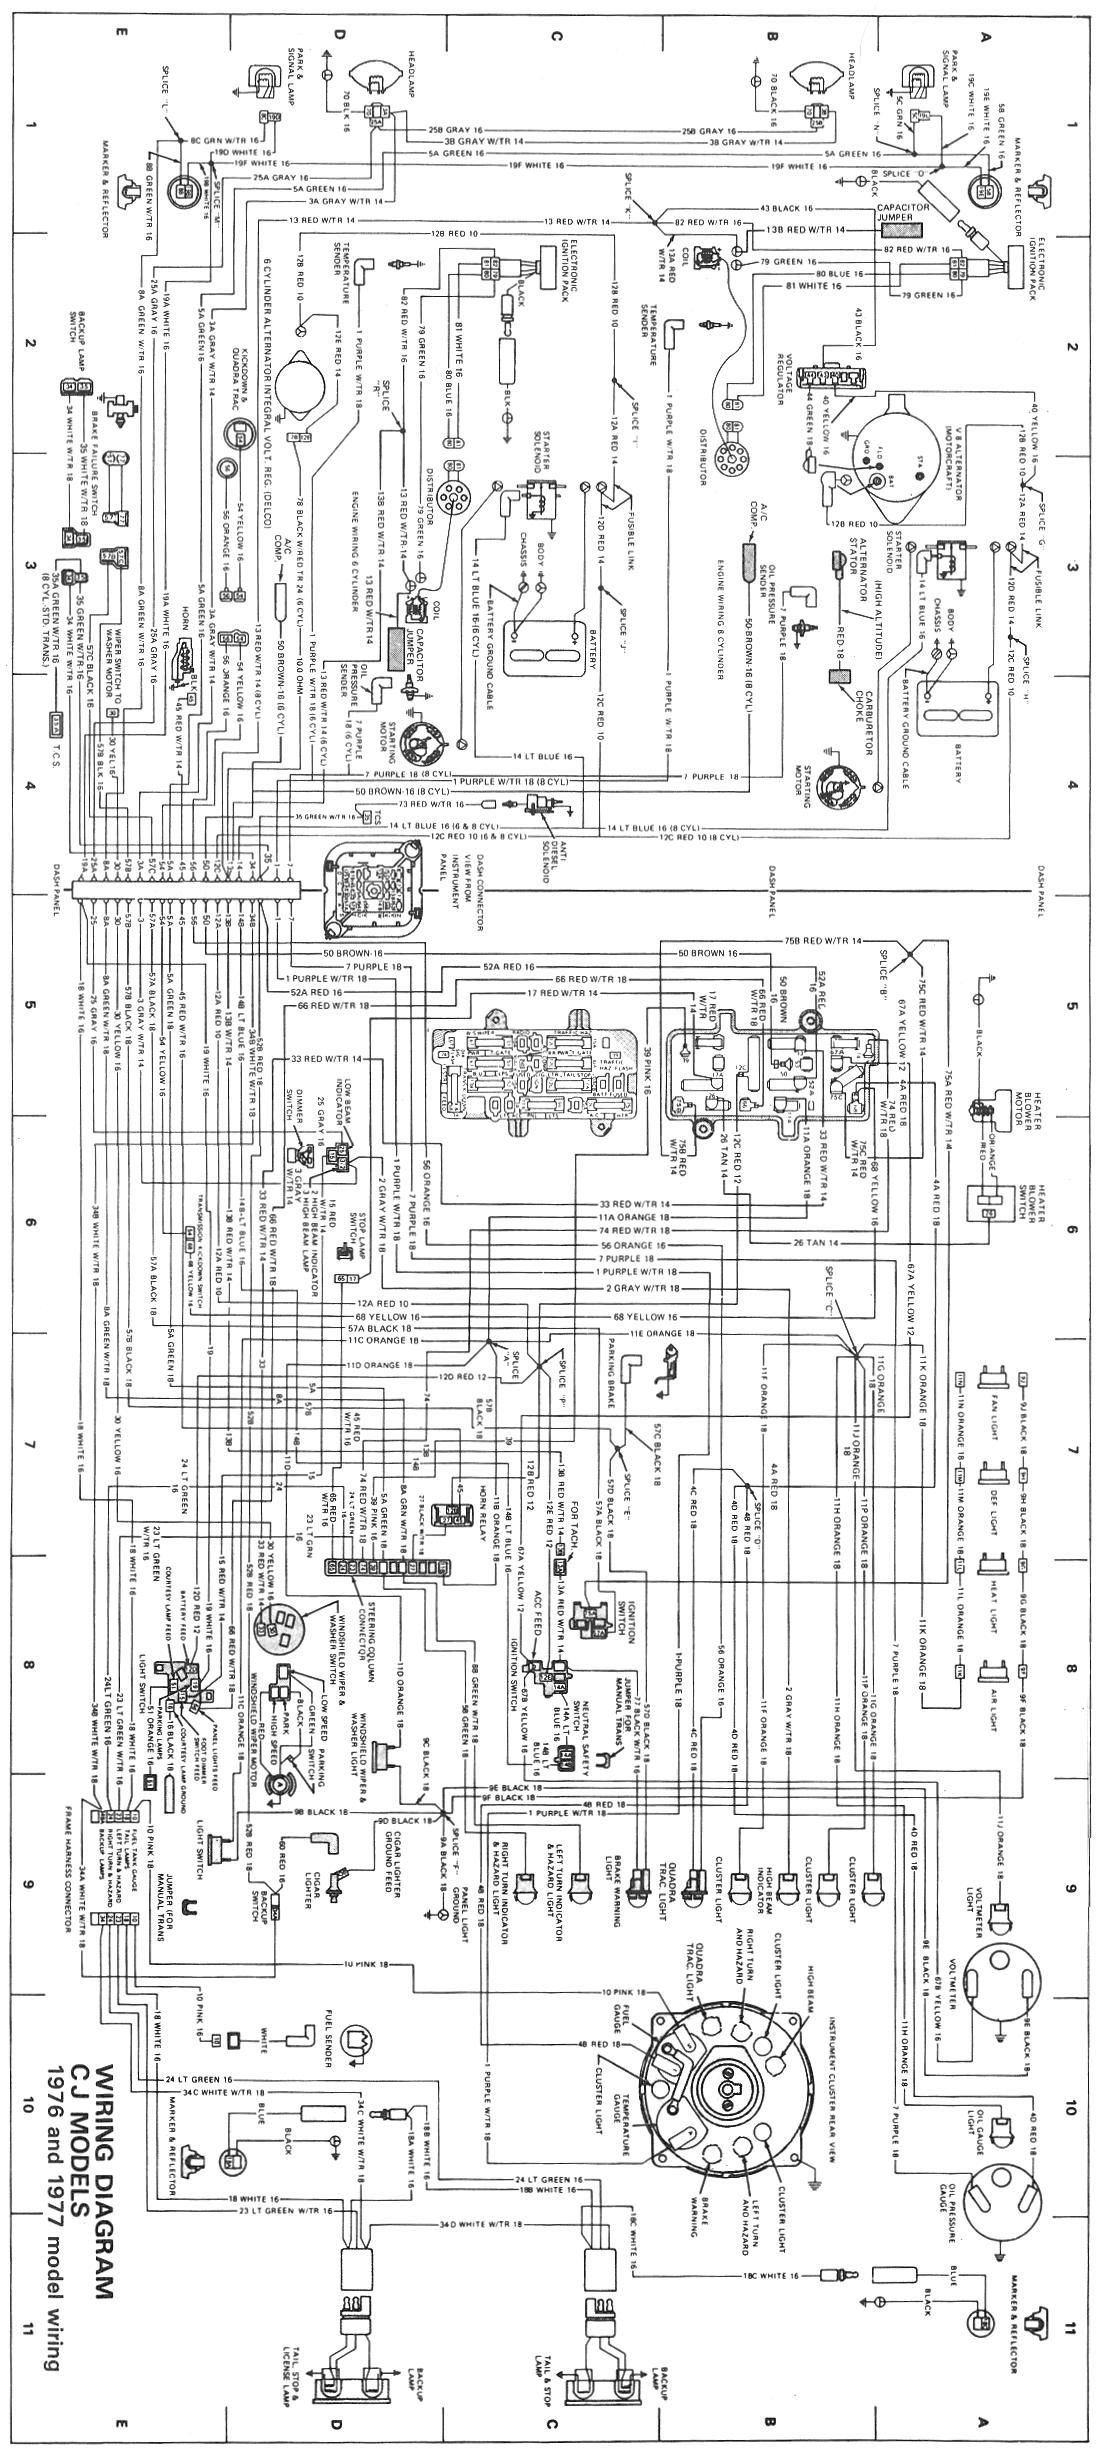 8d25ded6e3673519e155875e09844e5e cj wiring diagram 1976 1977 jpg 1,100�2,459 pixels 1976 jeep cj5 Painless Wiring Harness Diagram at readyjetset.co